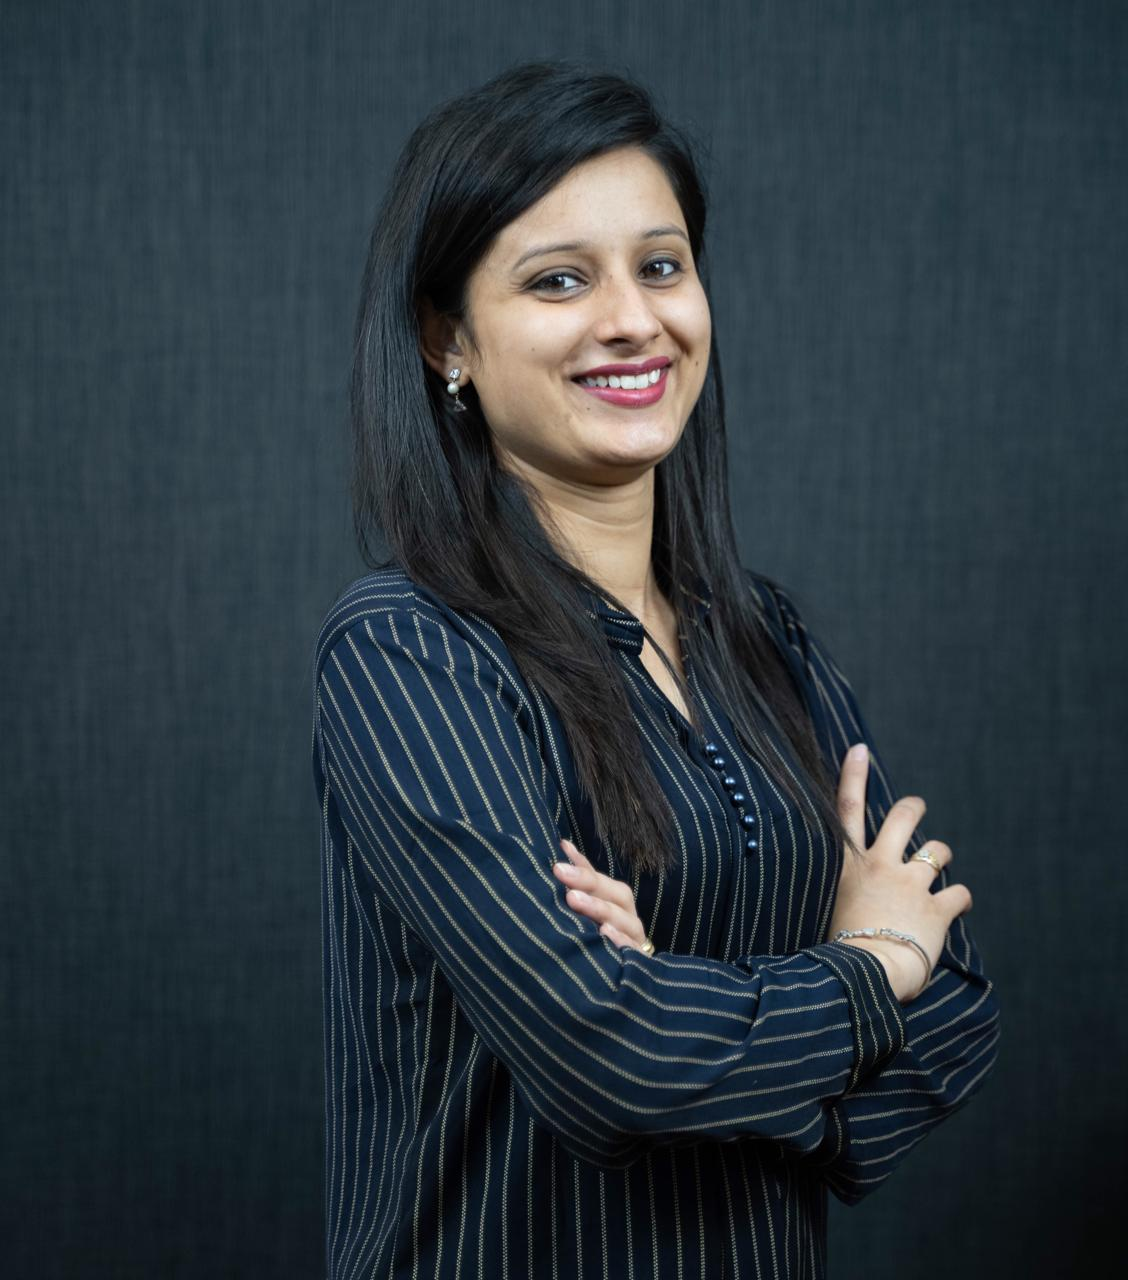 Women entrepreneur working for online reputation management to help brands from local to global